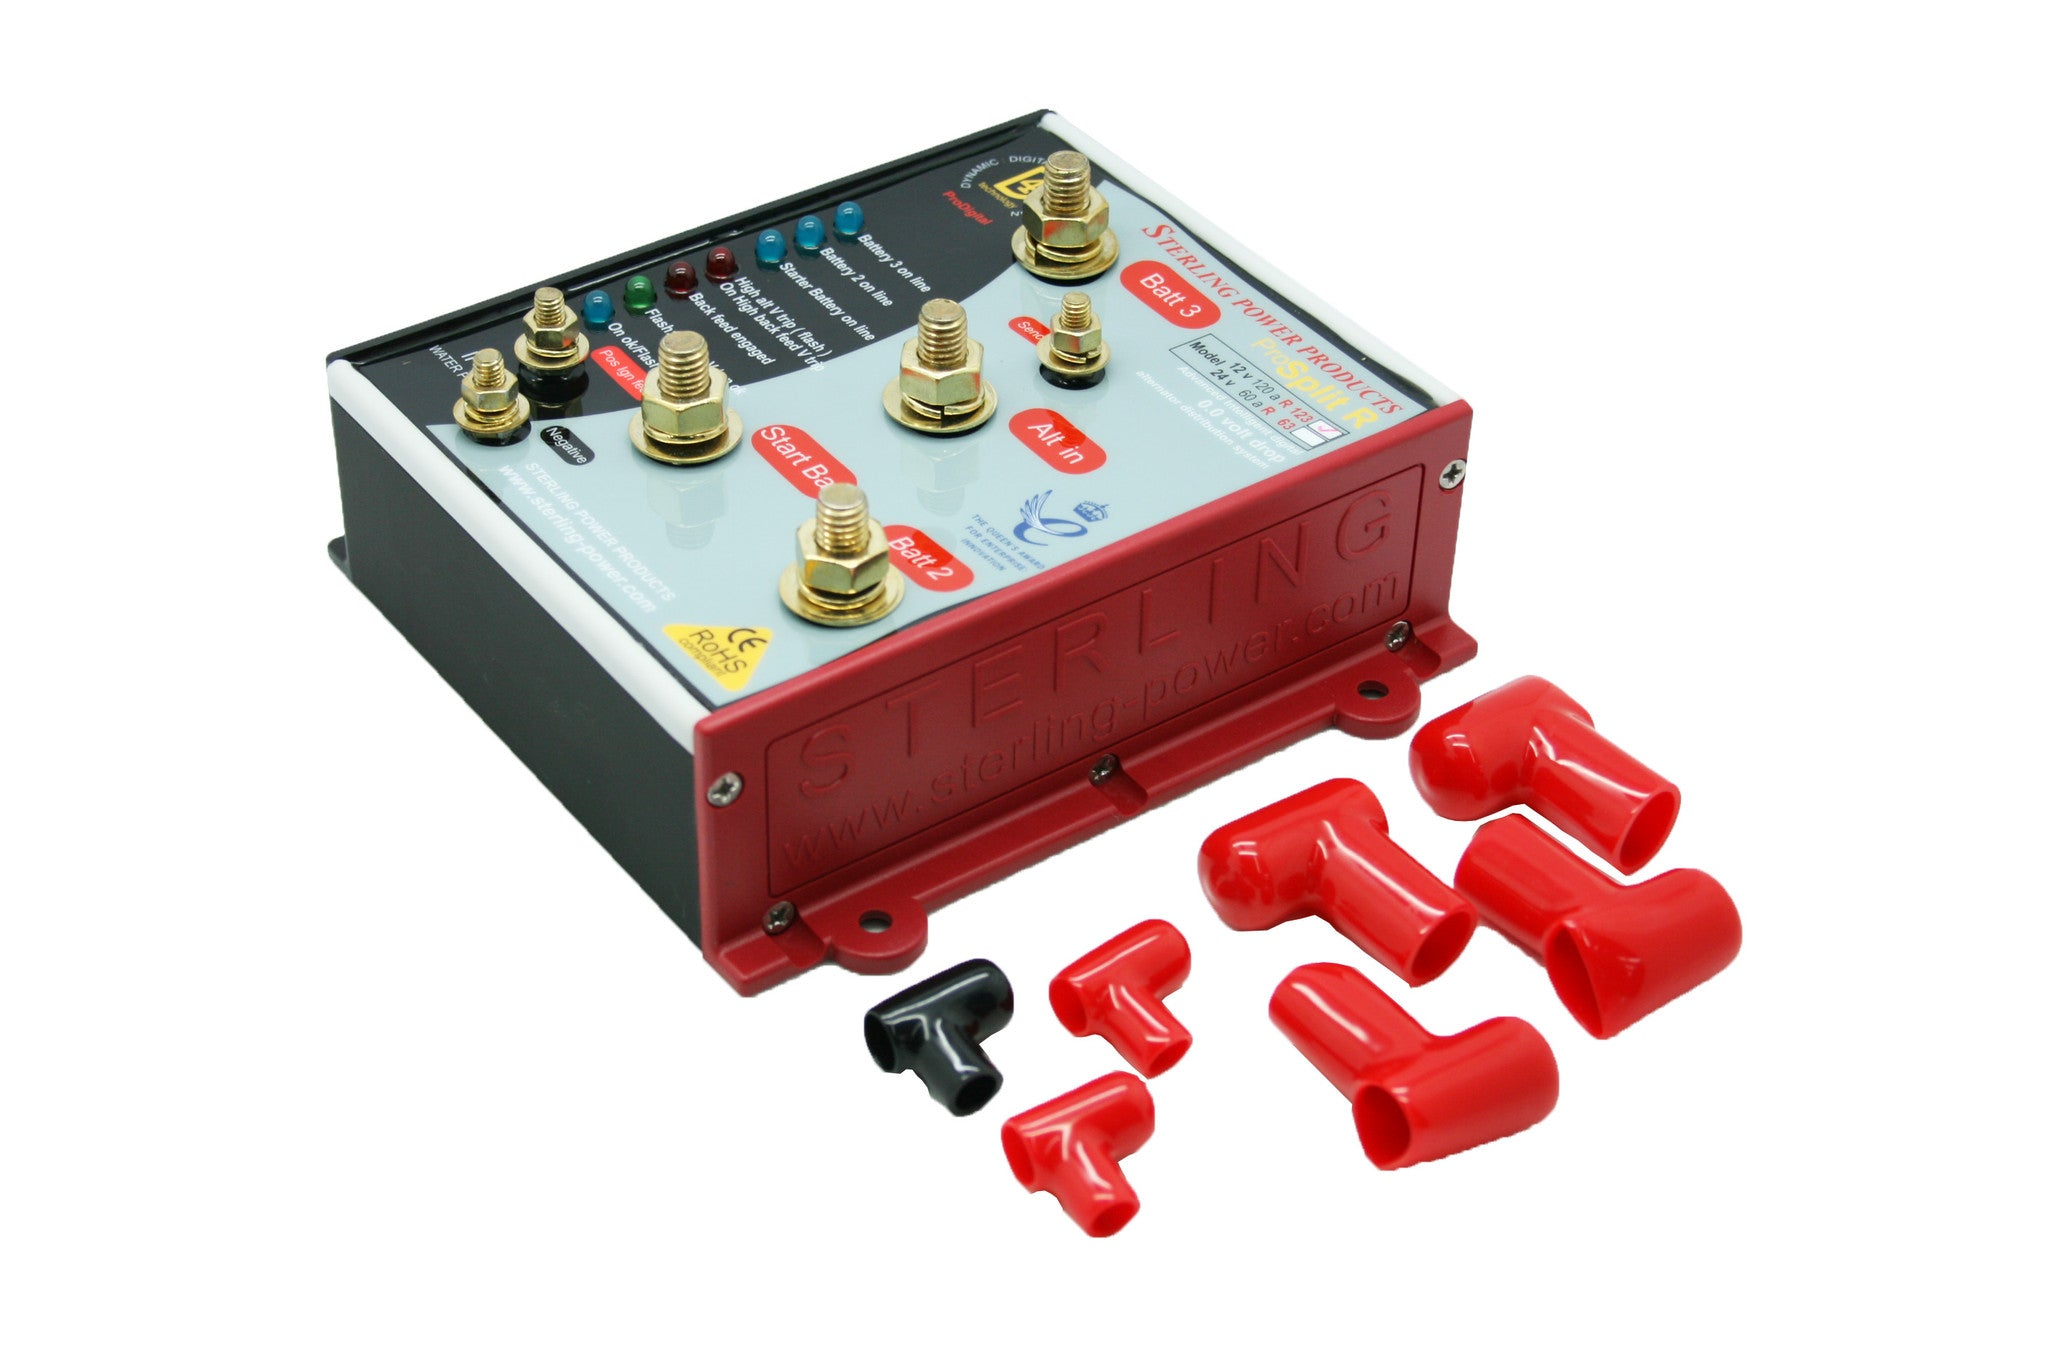 PSRT134 4 output 2 input 0.0V drop splitting system.